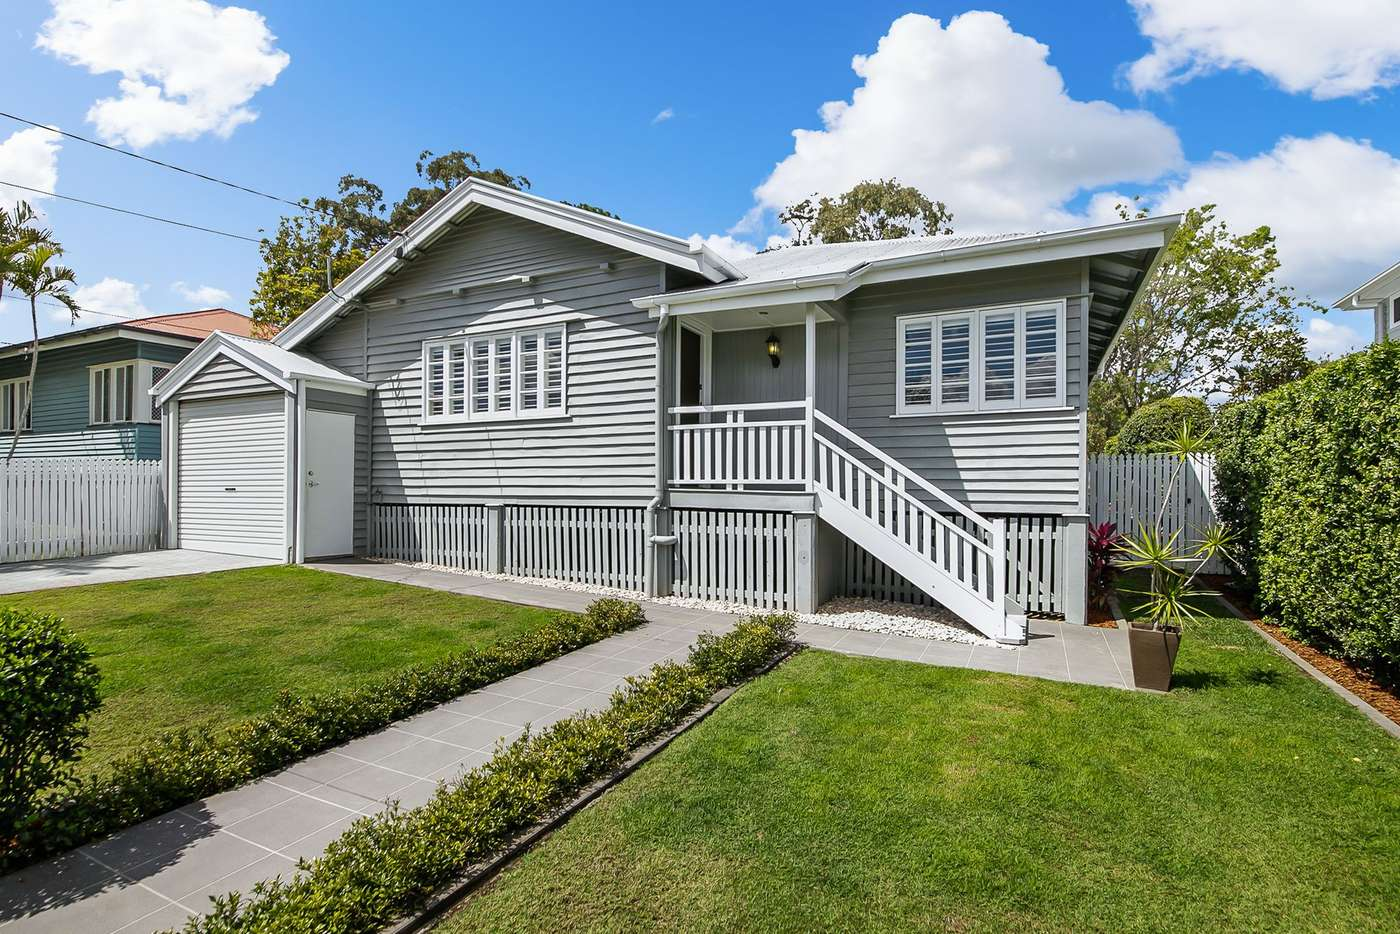 Main view of Homely house listing, 161 Beddoes Street, Holland Park QLD 4121